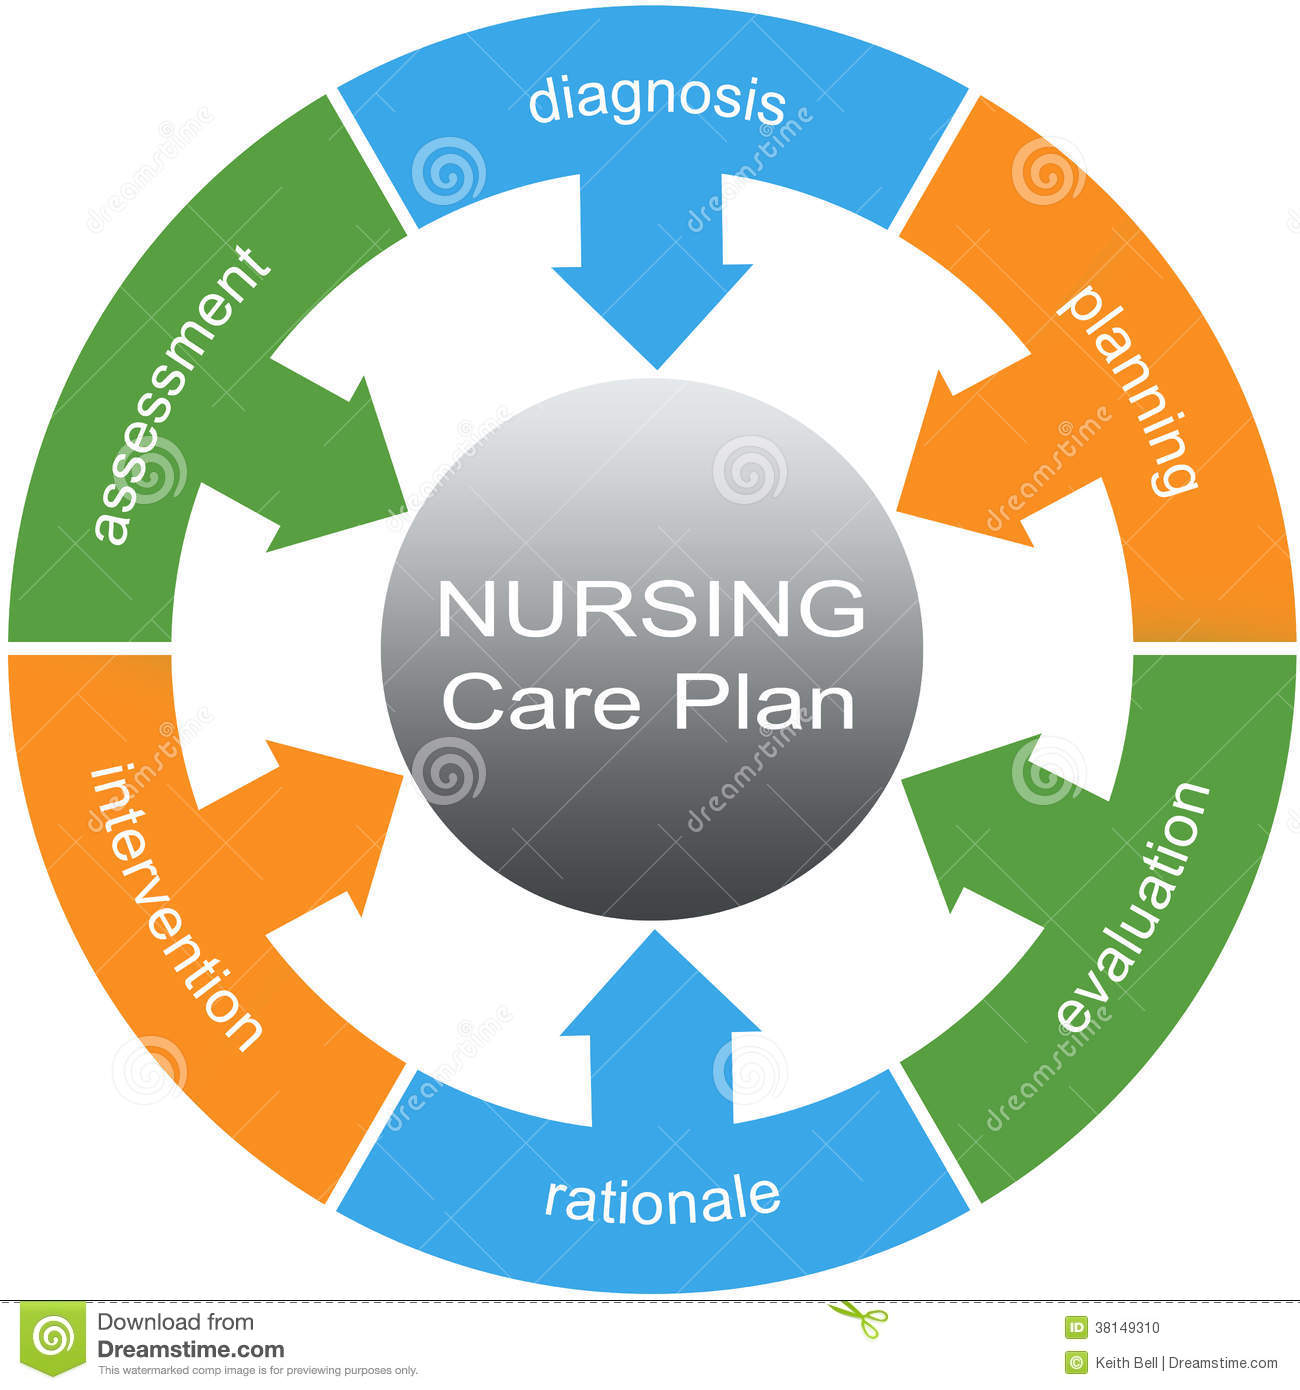 Nursing Care Plan Word Circle Concept Stock Photo - Image: 38149310